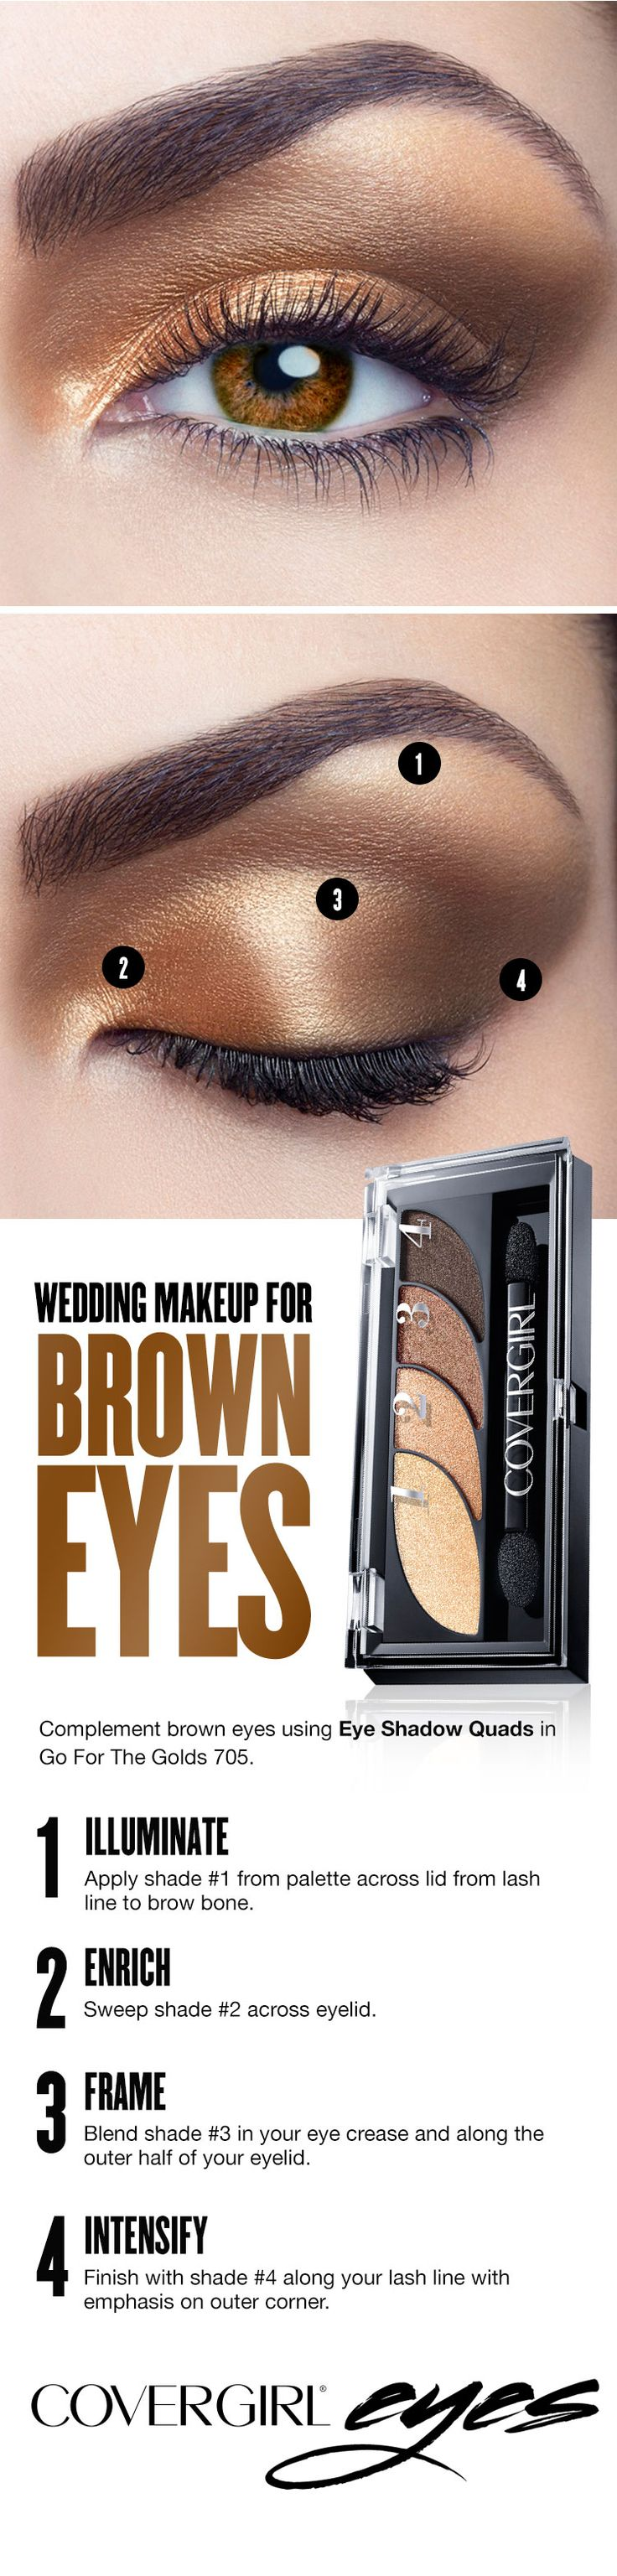 Bronze or gold shades accentuate brown eyes. Follow this easy step-by-step makeup guide for brown eyes on your wedding day using COVERGIRL's Eye Shadow Quad in Go For The Golds 705. Step 1: Illuminate. Apply shade 1 from palette across lid from lash line to brow bone. Step 2: Enrich. Sweep shade 2 across eyelid. Step 3: Frame. Blend shade 3 in your eye crease and along the outer half of your eyelid. Step 4: Intensify. Finish with shade 4 along your lash line with emphasis on outer corner.